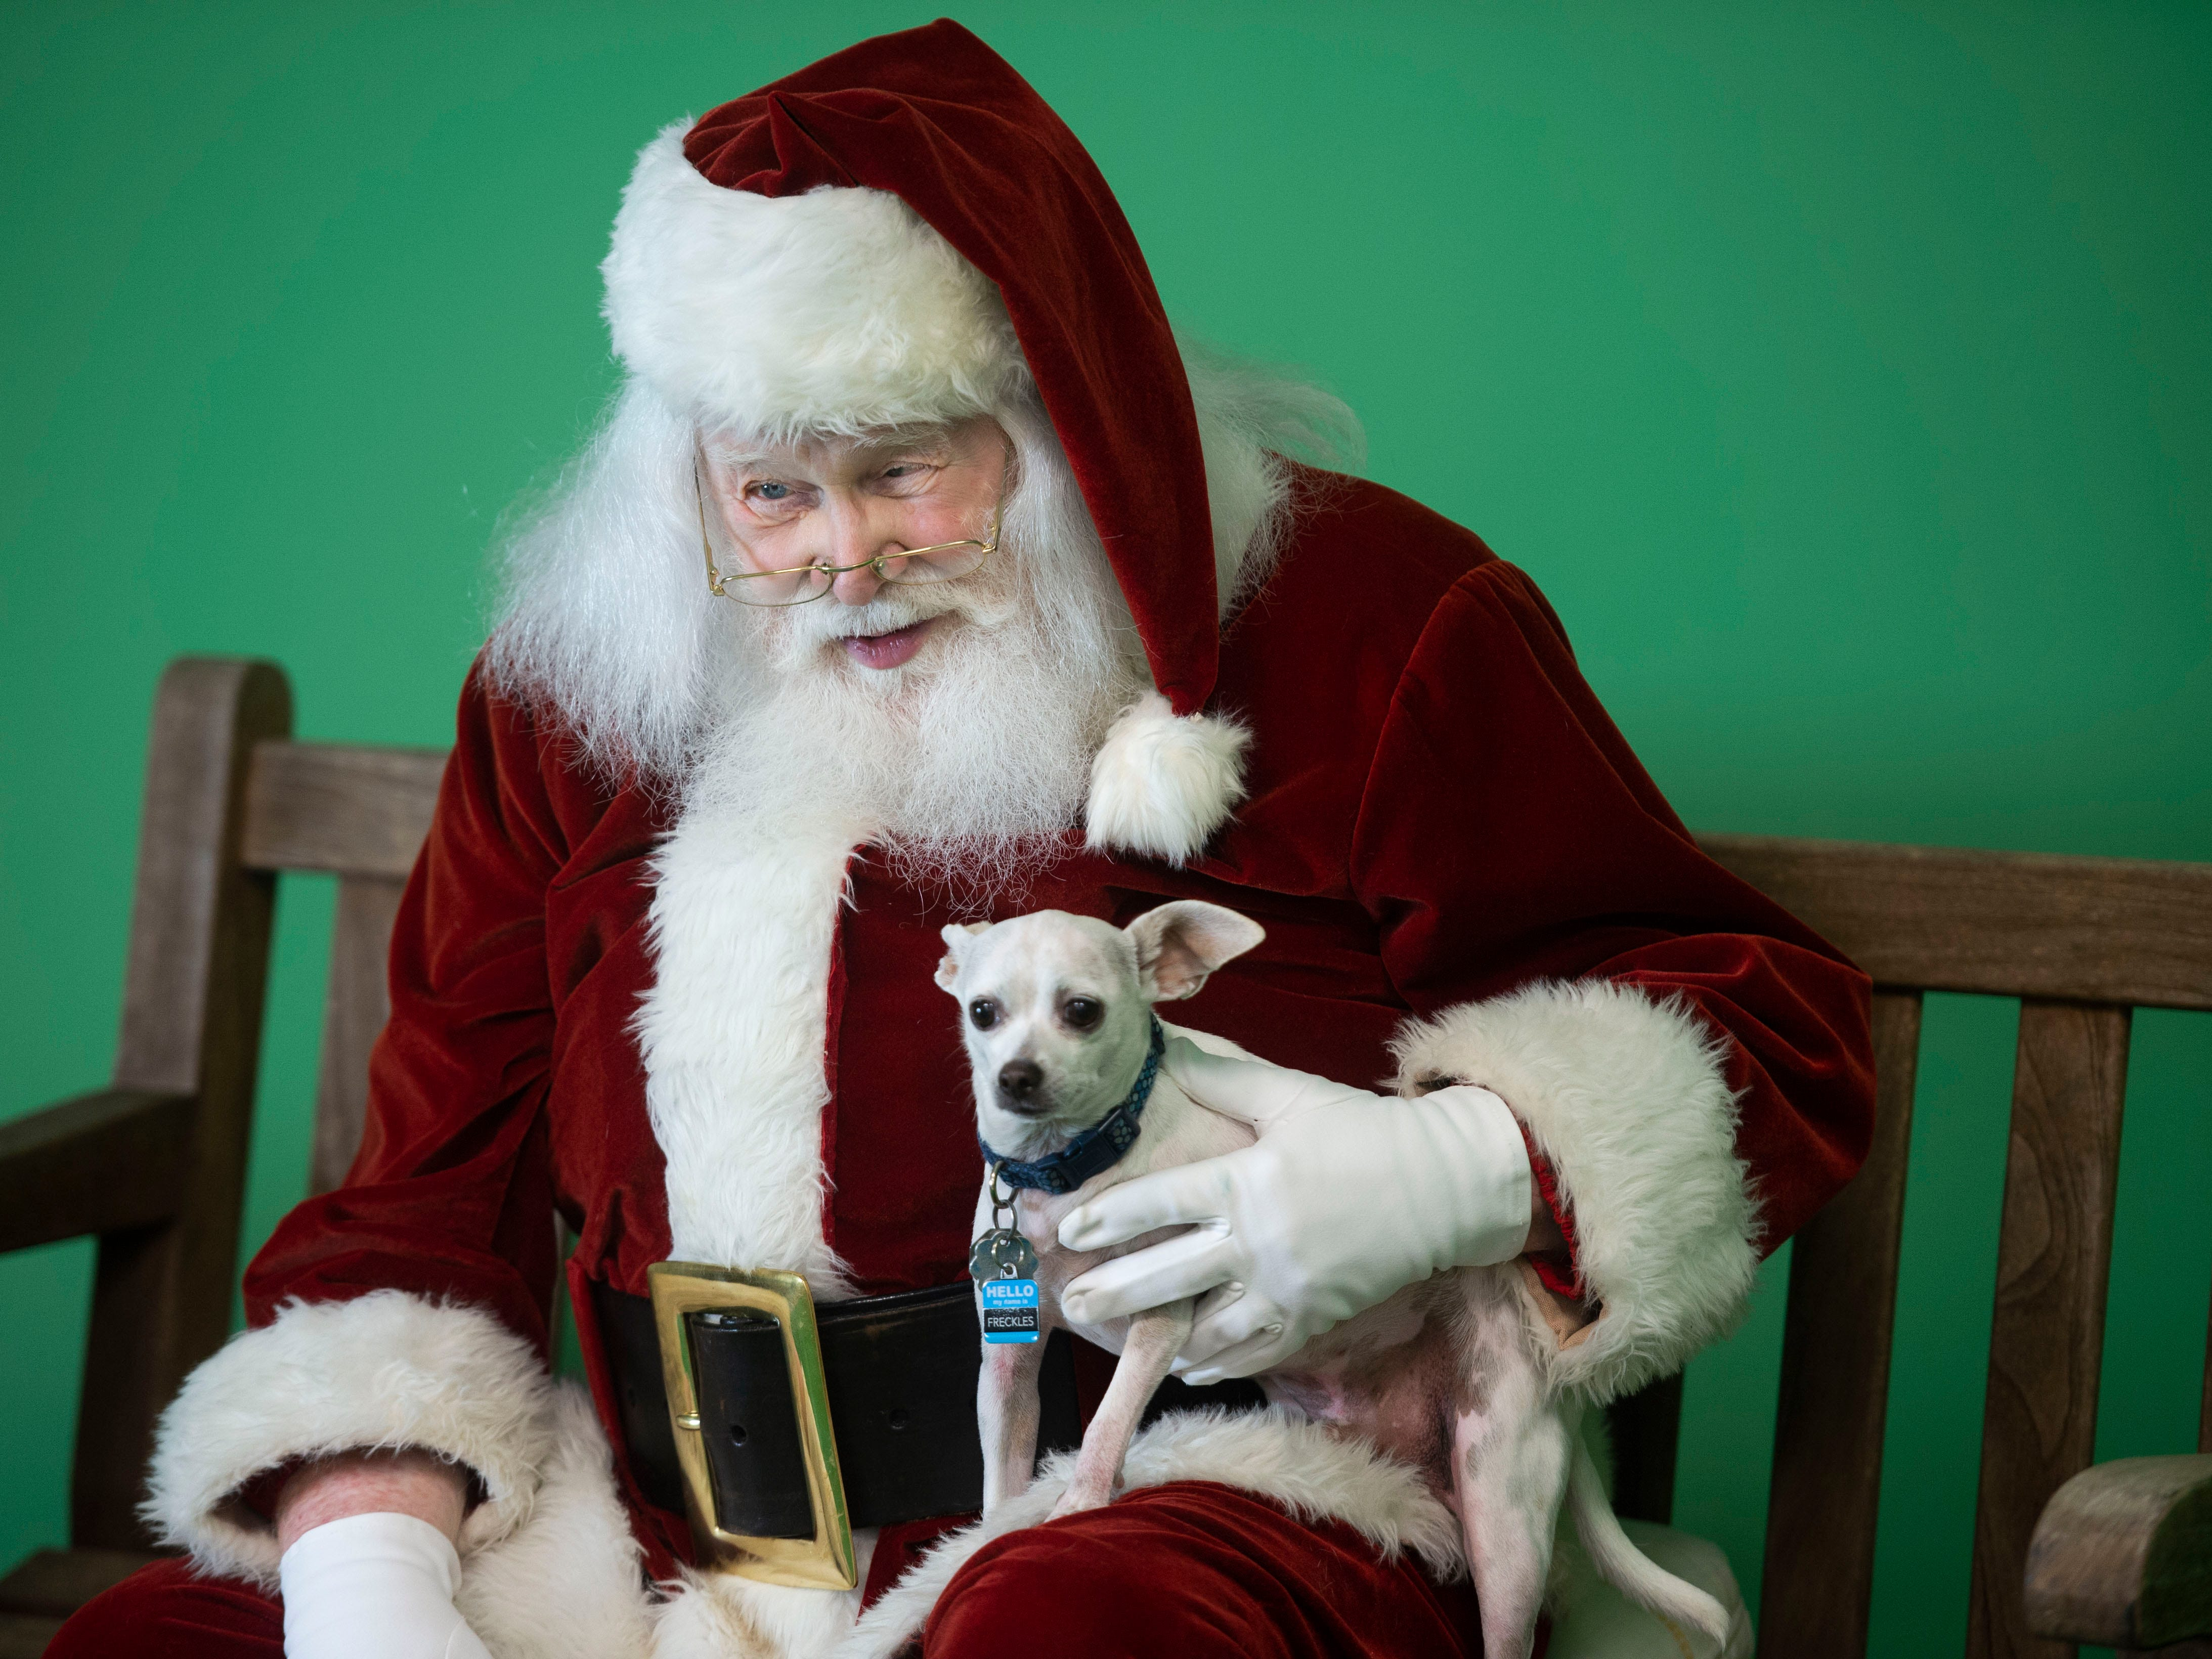 "Freckles, 4, a Chihuahua mix, poses for a portrait with Lance Willock, dressed as Santa Claus, during the Humane Society of Vero Beach and Indian River County's annual Santa Paws photo shoot Sunday, Nov. 4, 2018 at the Humane Society Thrift Store in Vero Beach. Willock is used to meeting children during the holiday season, but enjoys greeting the animals and helping out with the fundraiser. ""They're different than children but they all have personalities. Once they get acquainted with Santa it's interesting to see how they all react to Santa, almost like children somewhat,"" Willock said."